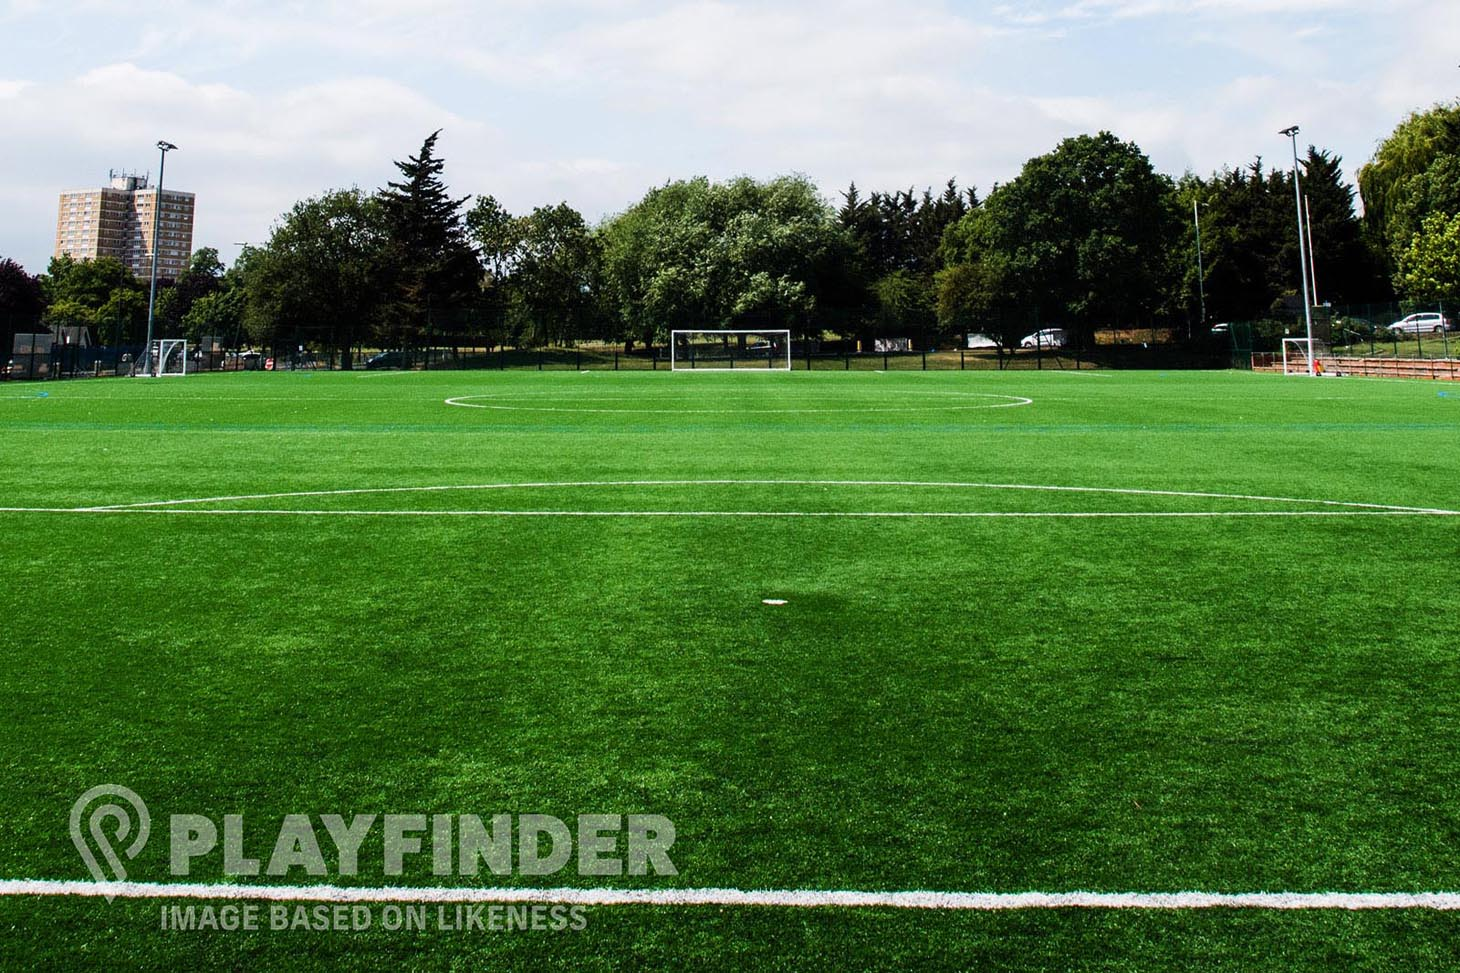 Manchester Creative And Media Academy 11 a side | 3G Astroturf football pitch